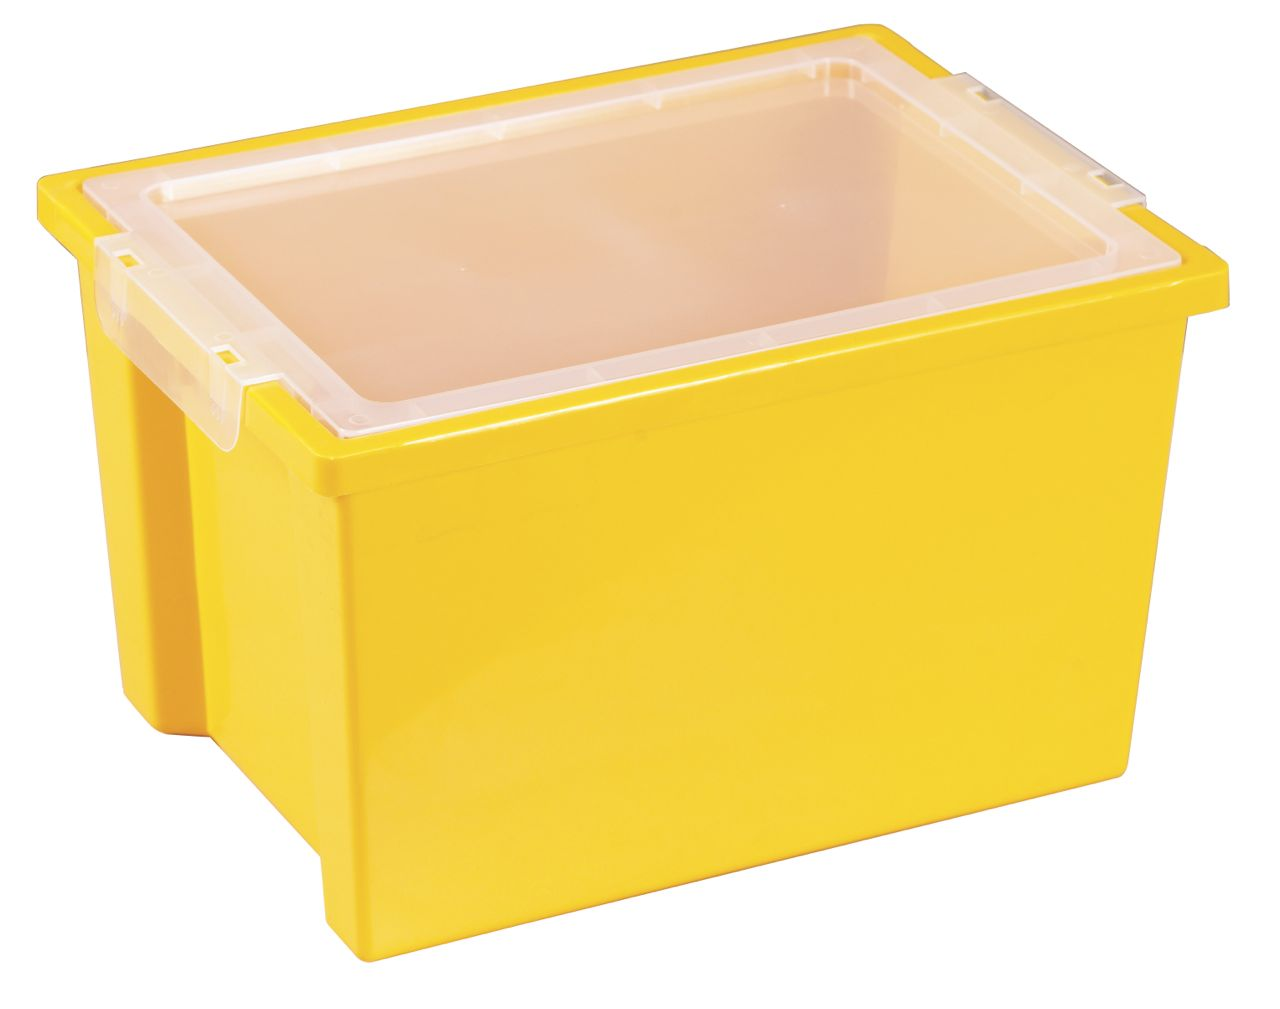 Storage Totes With Lids Sterilite 30 Gallon Tote Plastic